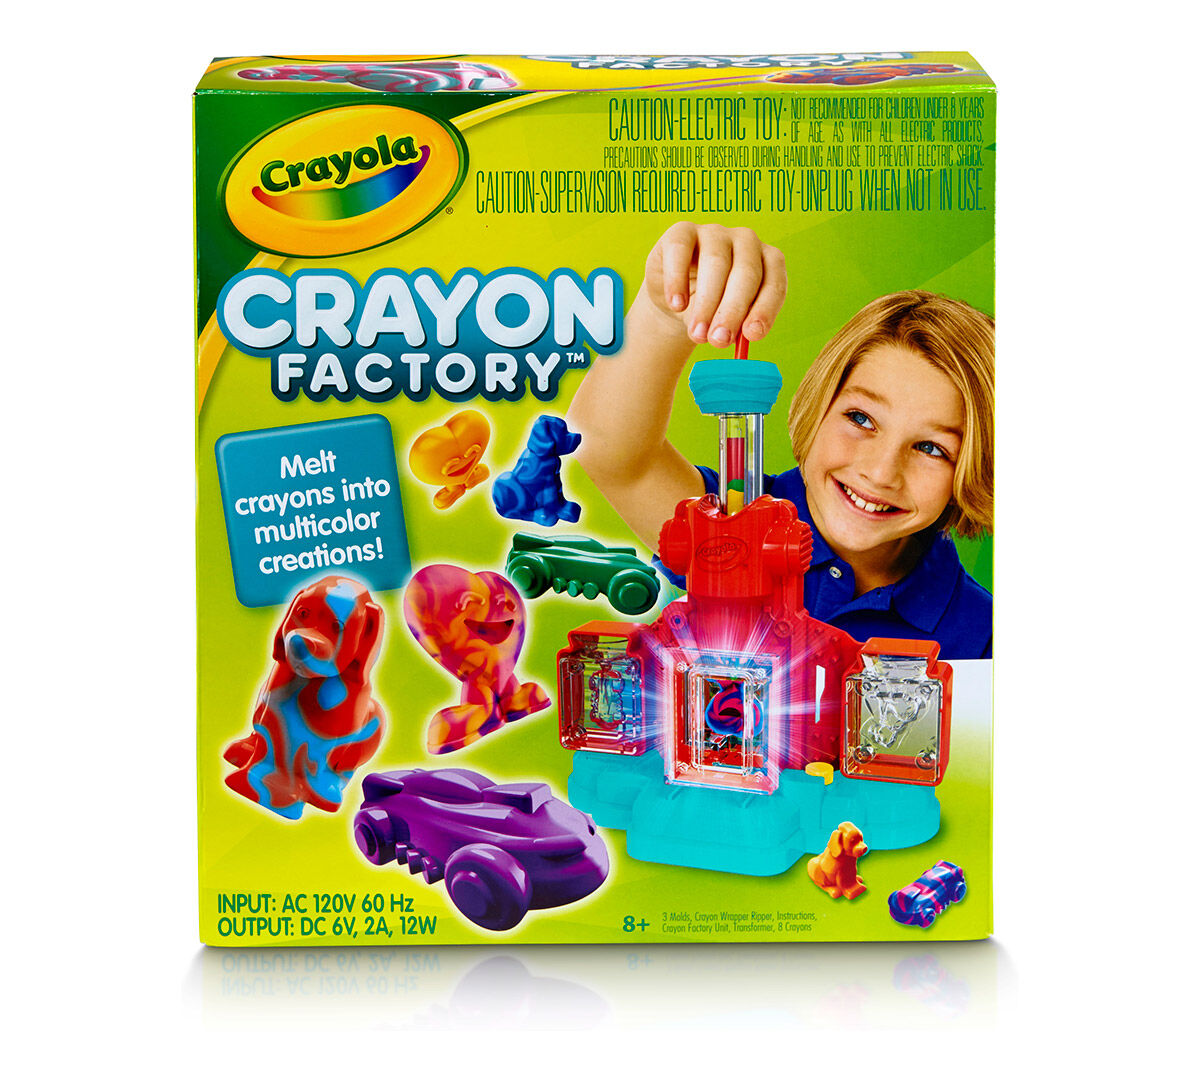 Create Your Own Crayola Stampers The Crayola Emoji Maker is a fun way to learn how markers and stampers are made while you make your own. Simply squeeze the included colored washable ink into the mixing vial and add a marker core to soak it up.